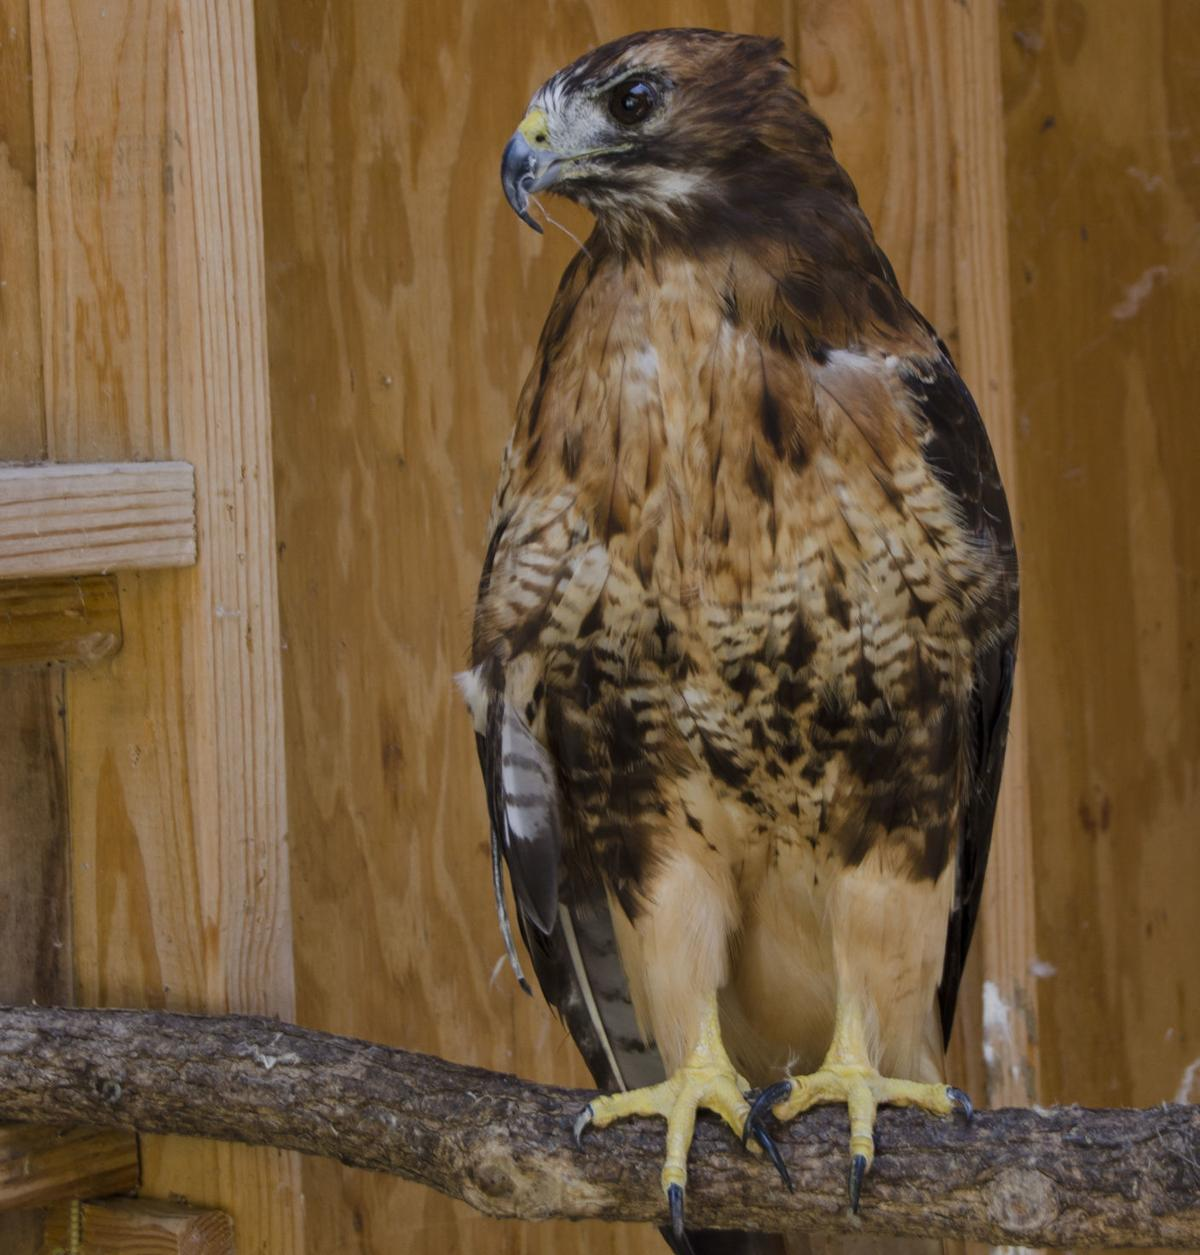 Scarlet the Red Tailed Hawk